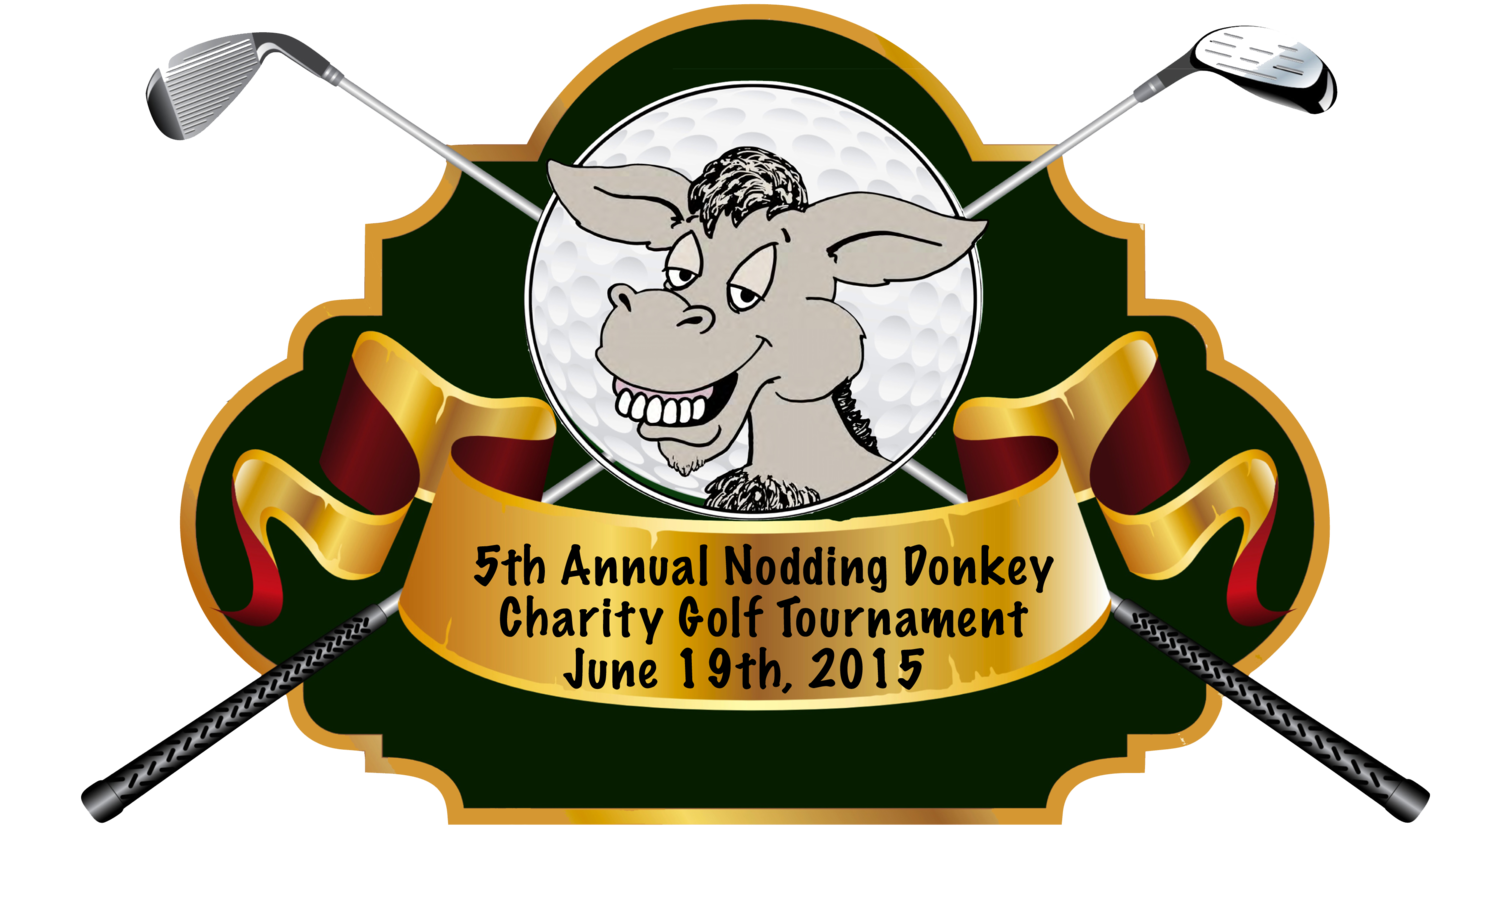 nodding donkey golf tournament